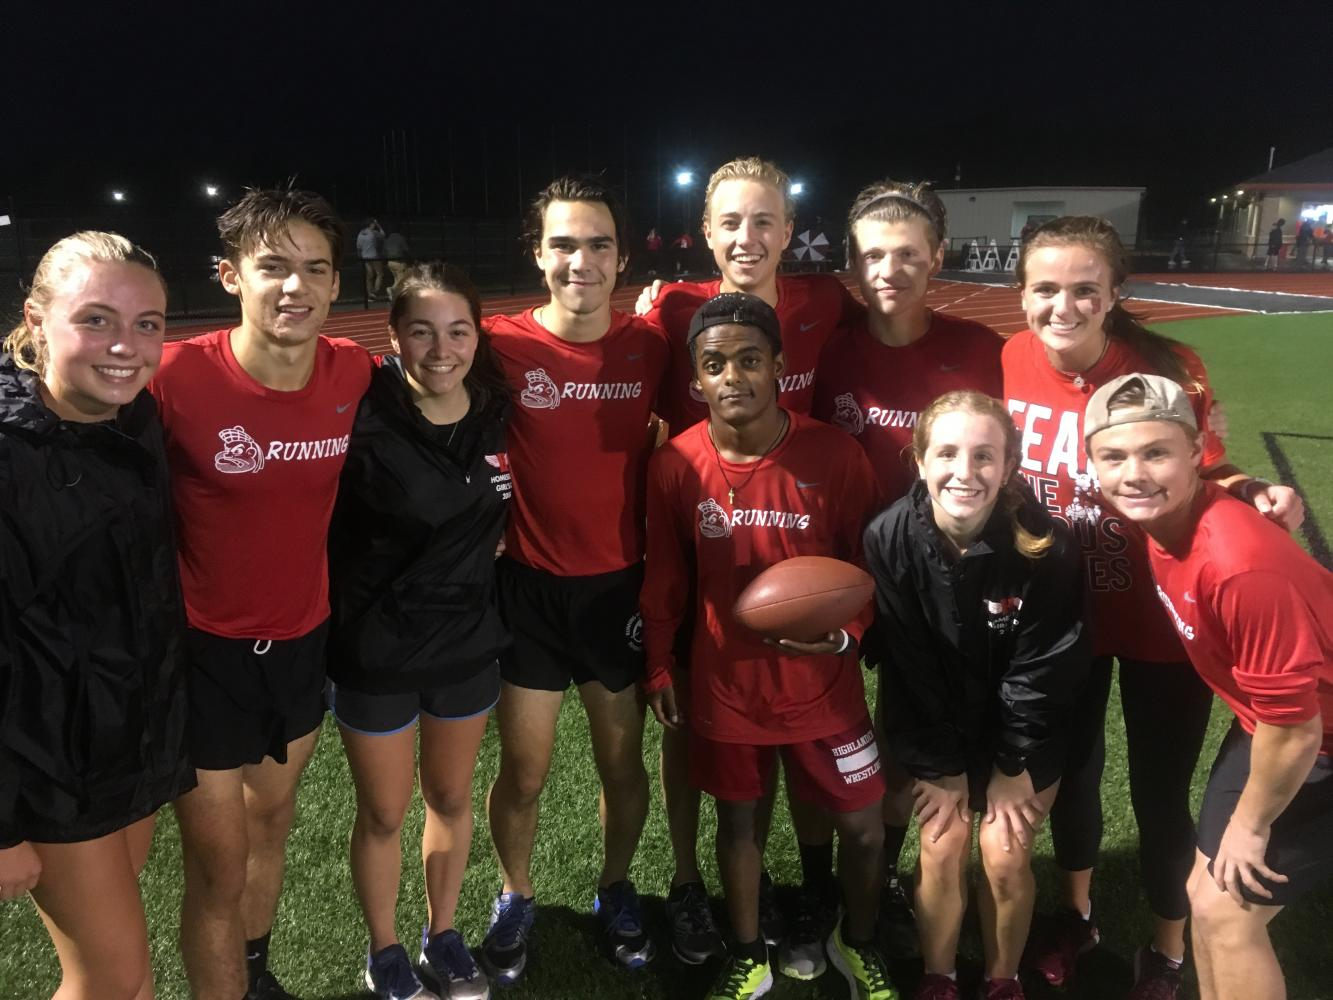 The seniors of the cross country team ran the game ball for the homecoming football game from Hartford to Mequon.